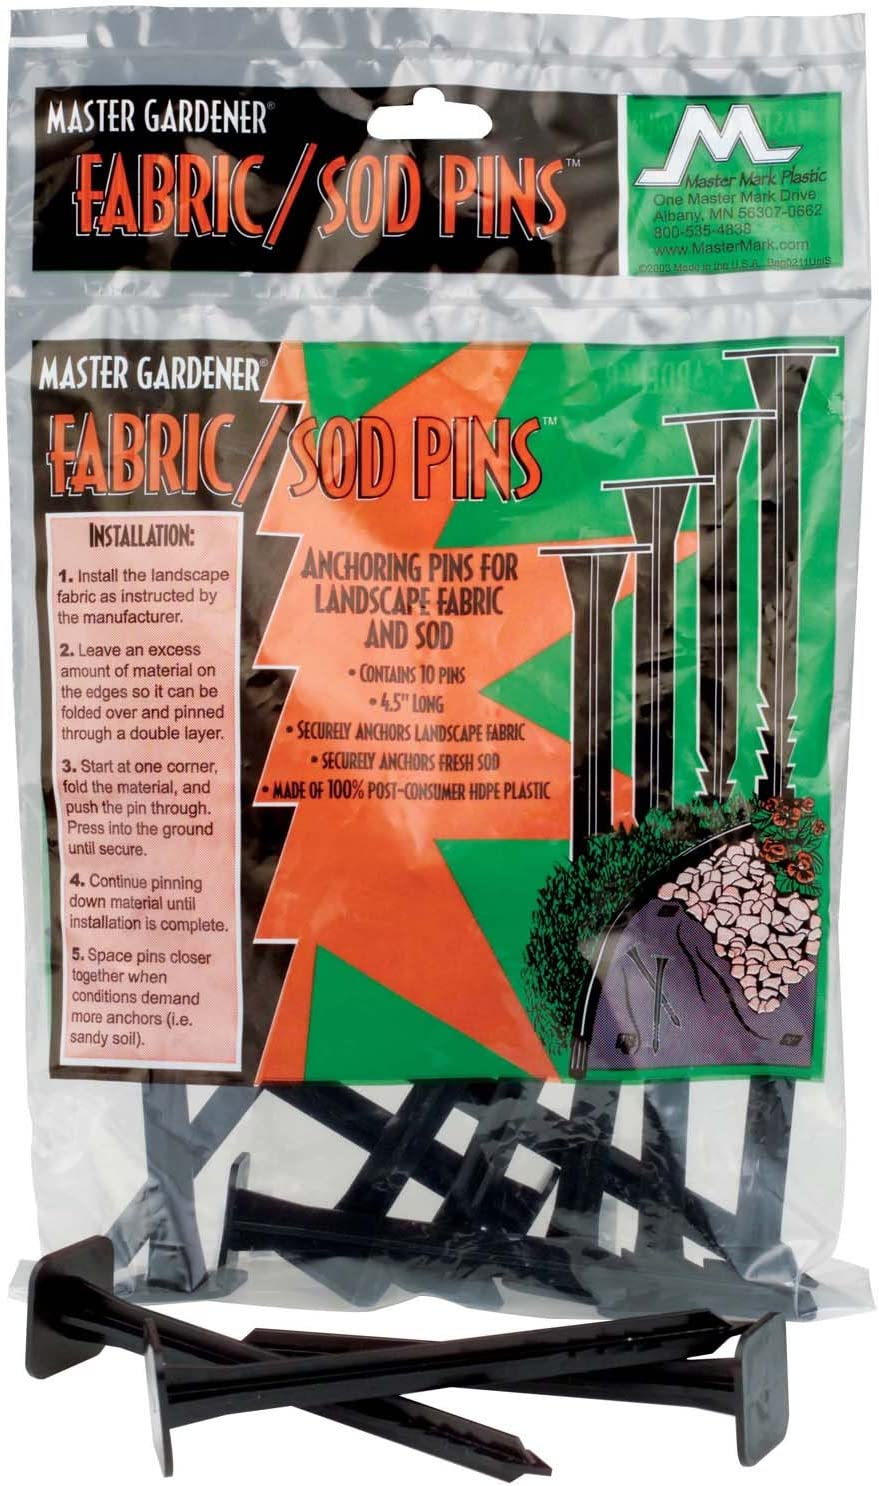 Amazon Com Master Mark Plastics 11110 Fabric And Sod Pins 4 5 Inch 10 Pack Garden Stakes Garden Outdoor